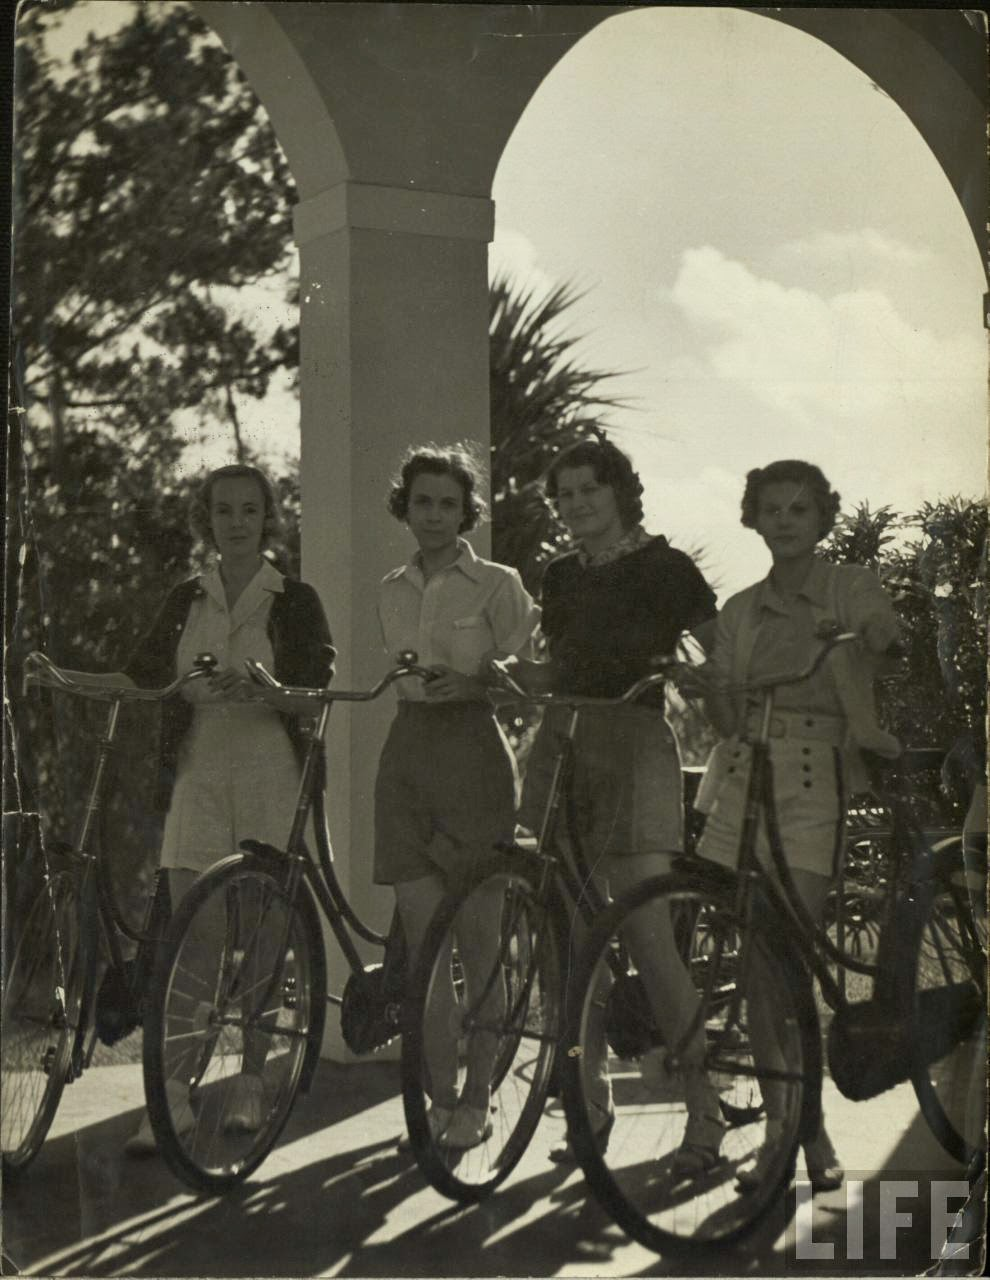 Women with Their Bicycles (30).jpg